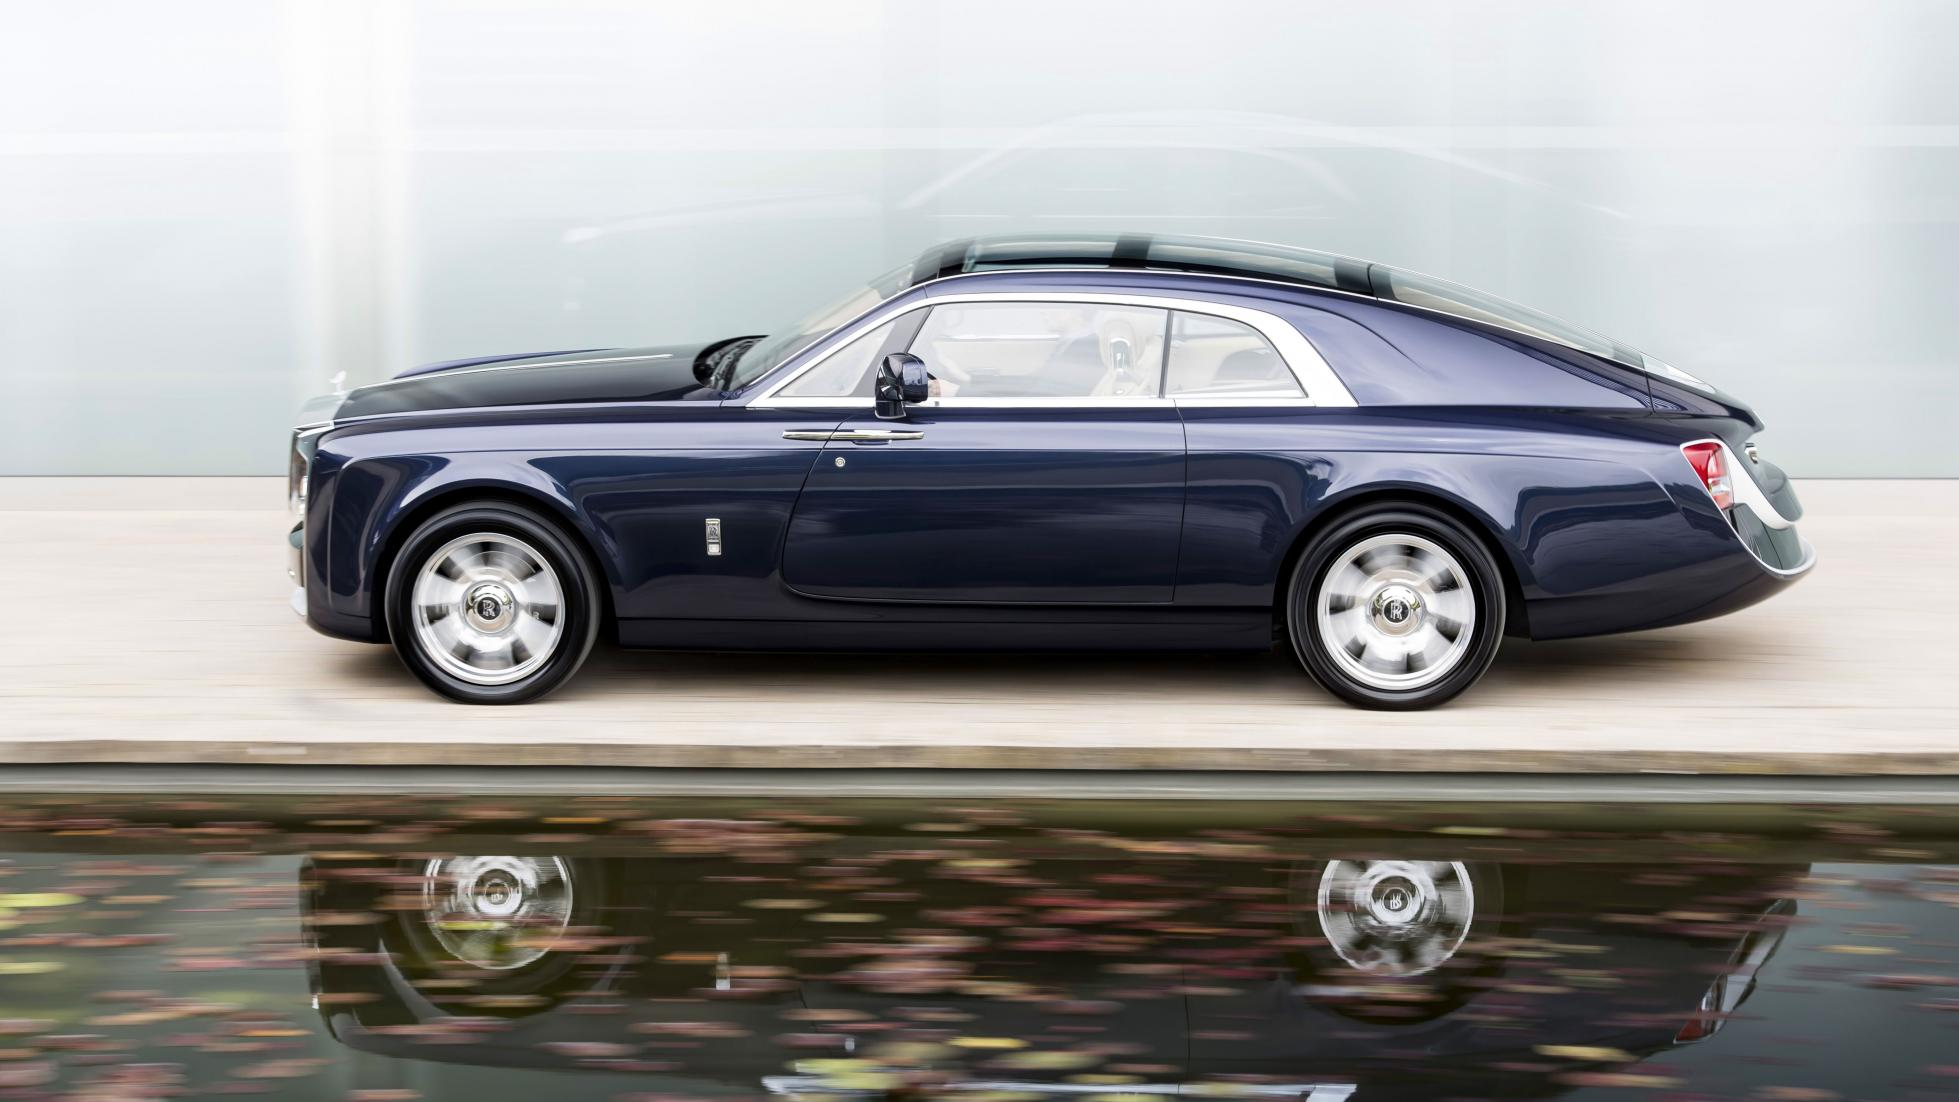 This $13 million Rolls Royce is the epitome of exclusivity